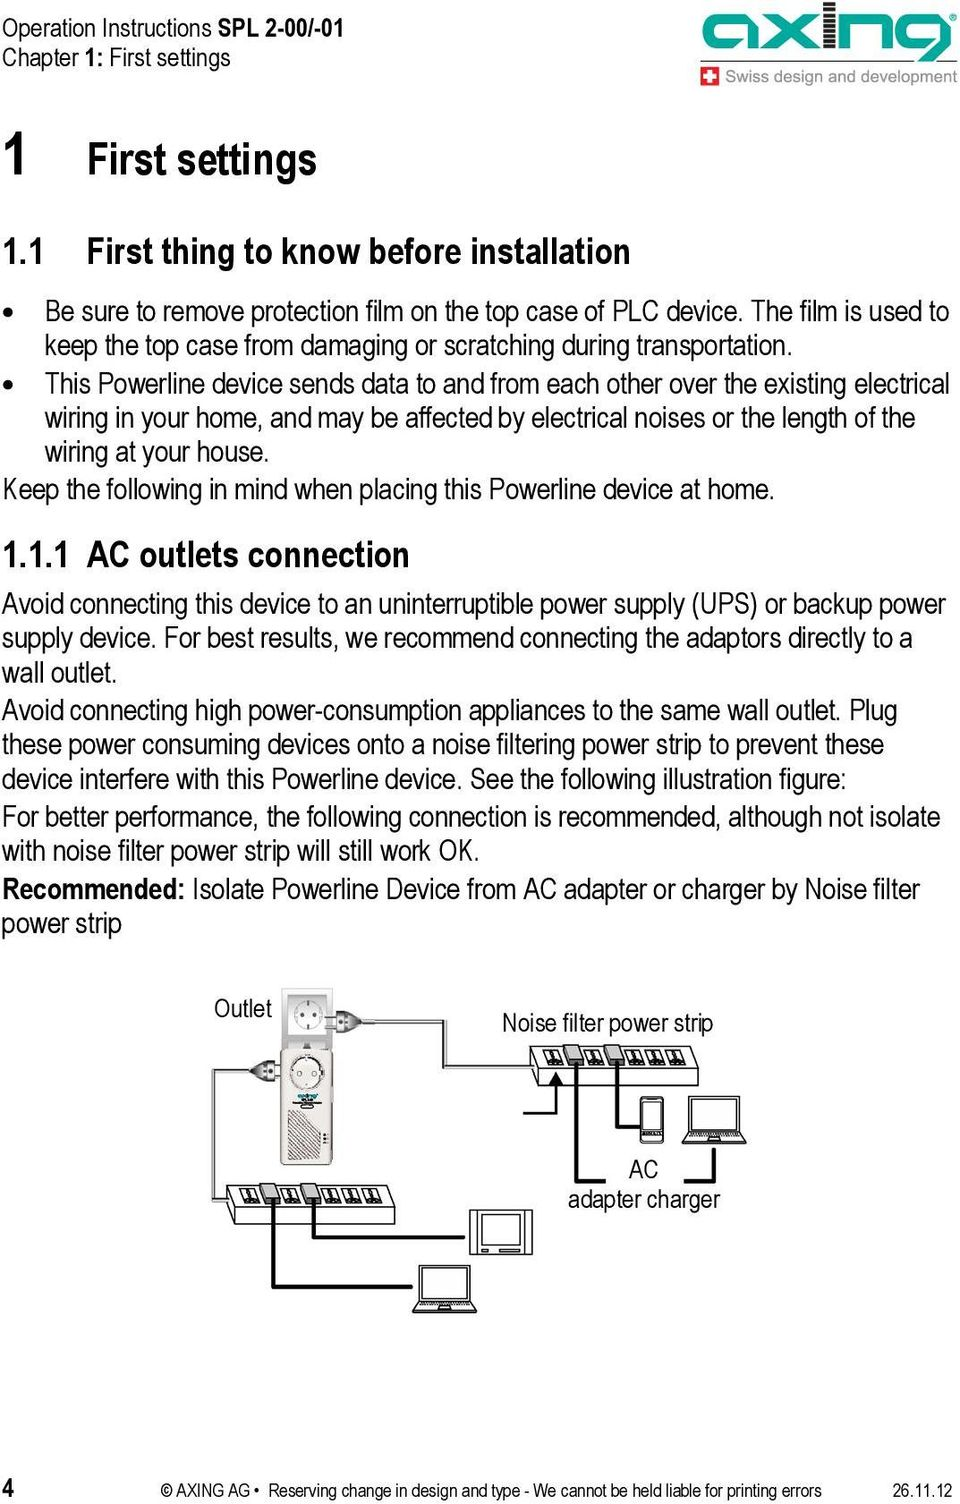 This Powerline device sends data to and from each other over the existing electrical wiring in your home, and may be affected by electrical noises or the length of the wiring at your house.